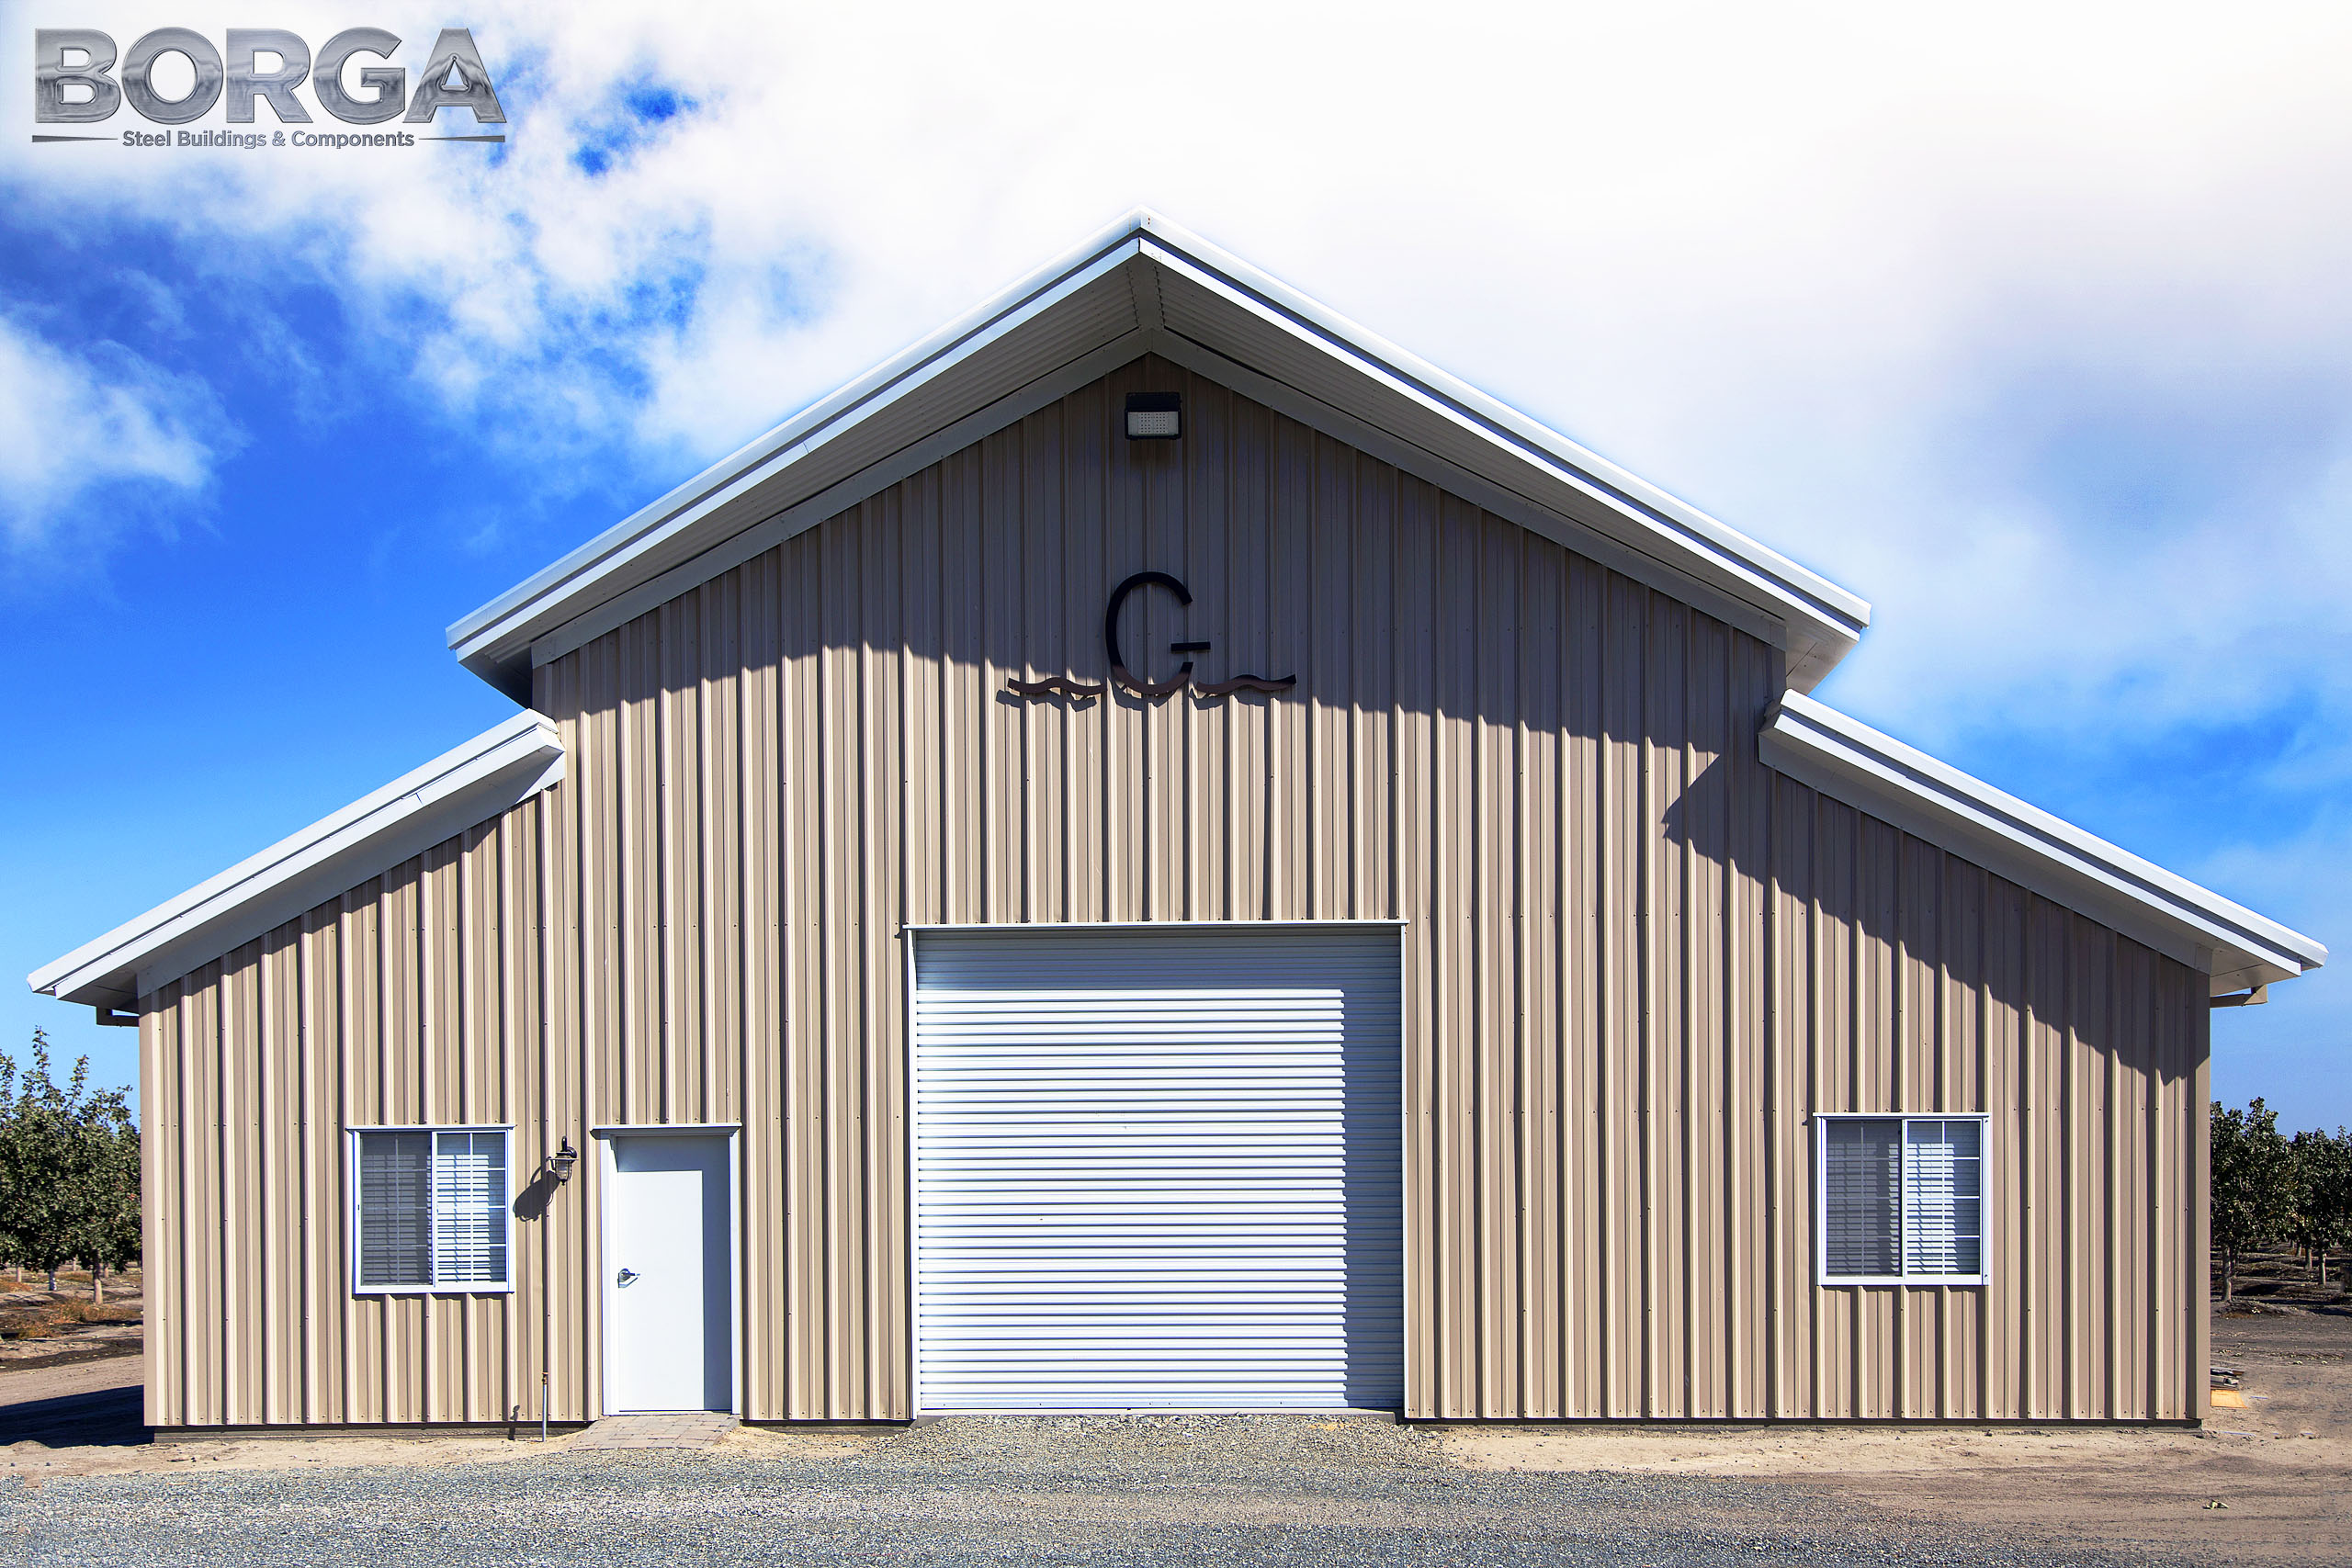 borga steel buildings components gilkey farms corcoran ca central valley metal agriculture tan white rca raised center aisle 4